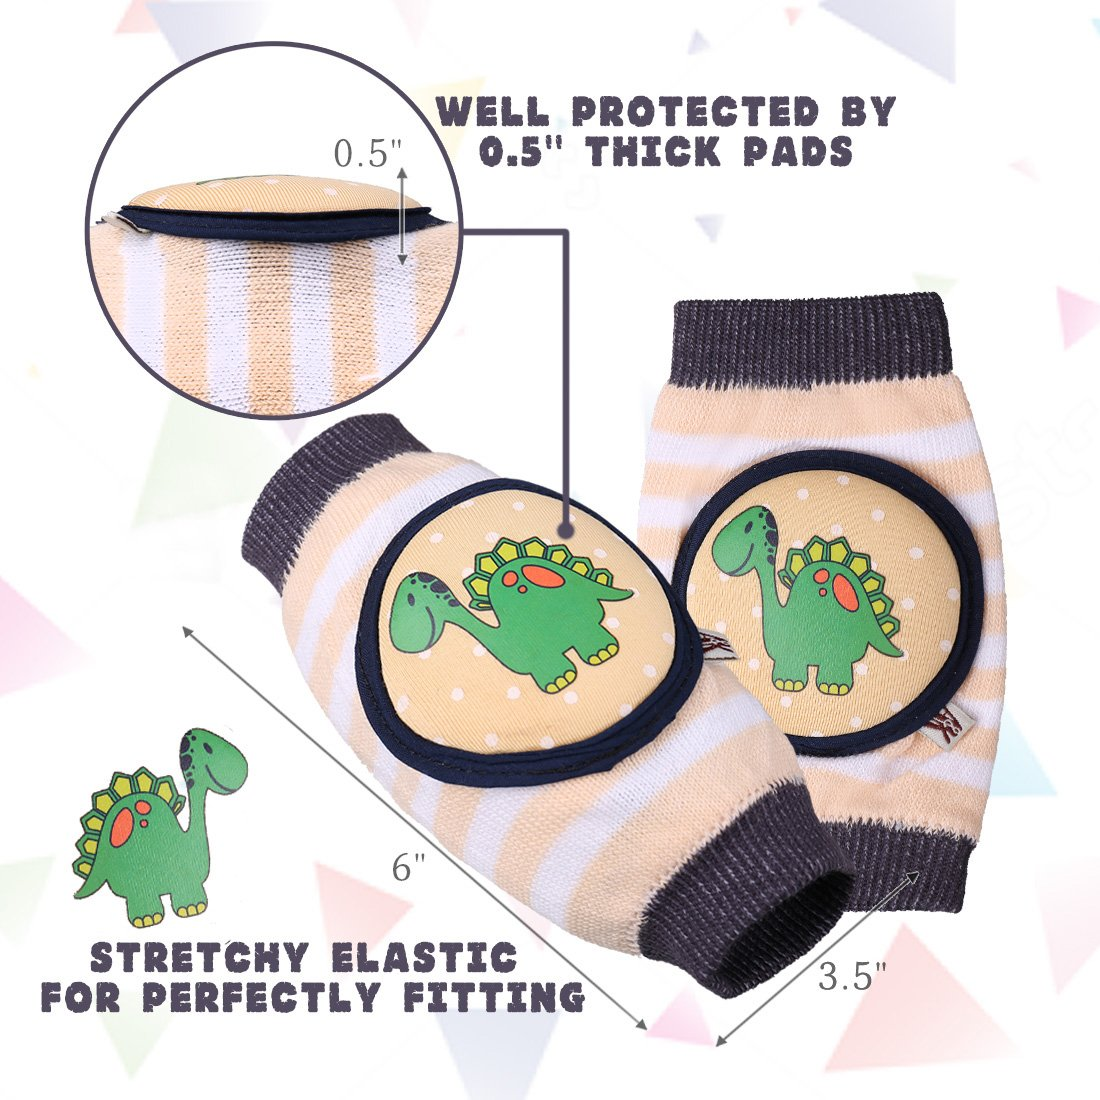 Ava & Kings Baby Knee Pads for Crawling - Babies Stuffs Gift Ideas for Infants - Protect Elbows and Legs w/Breathable Warmer Cotton and Anti-Slip Elastic - Unisex For Boys & Girls - Set of 3 by Ava & Kings (Image #6)